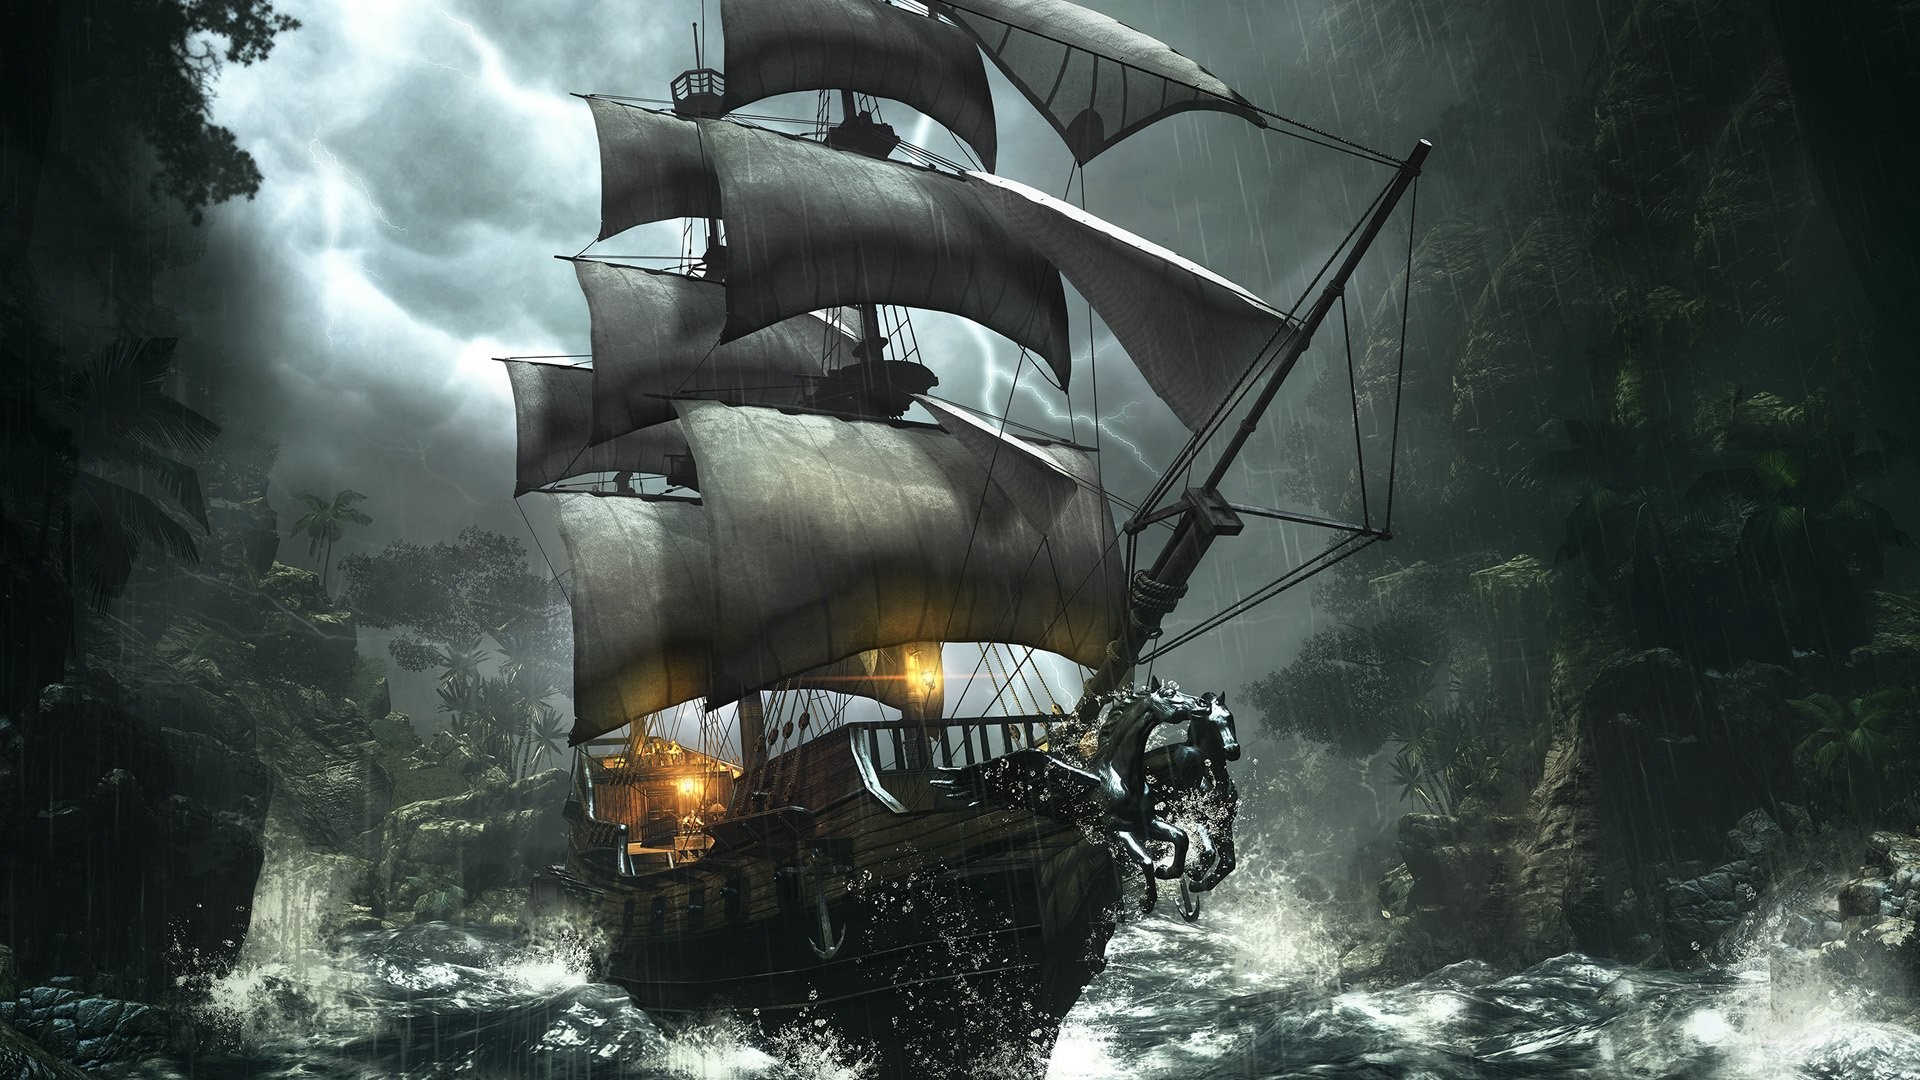 Pirate Ship Wallpaper High Definition #02c20 px 420.15 KB Other  Map. 1280×1024.